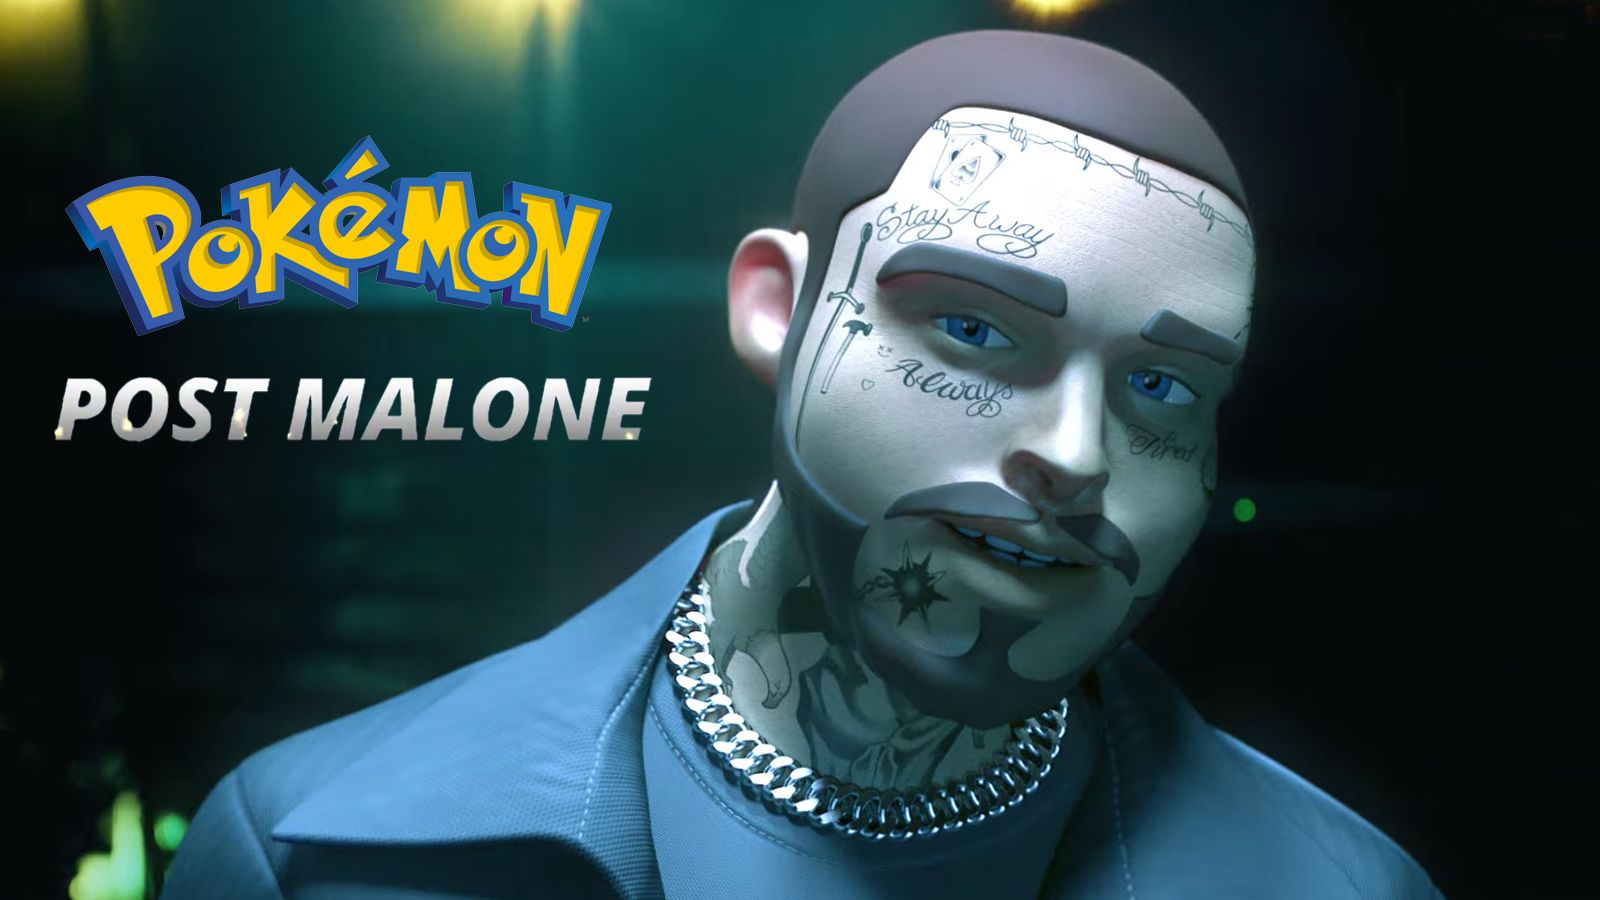 1c26ca90328416ef19c1438fa529a42c.How-to-watch-Pokemon-Post-Malone-concert